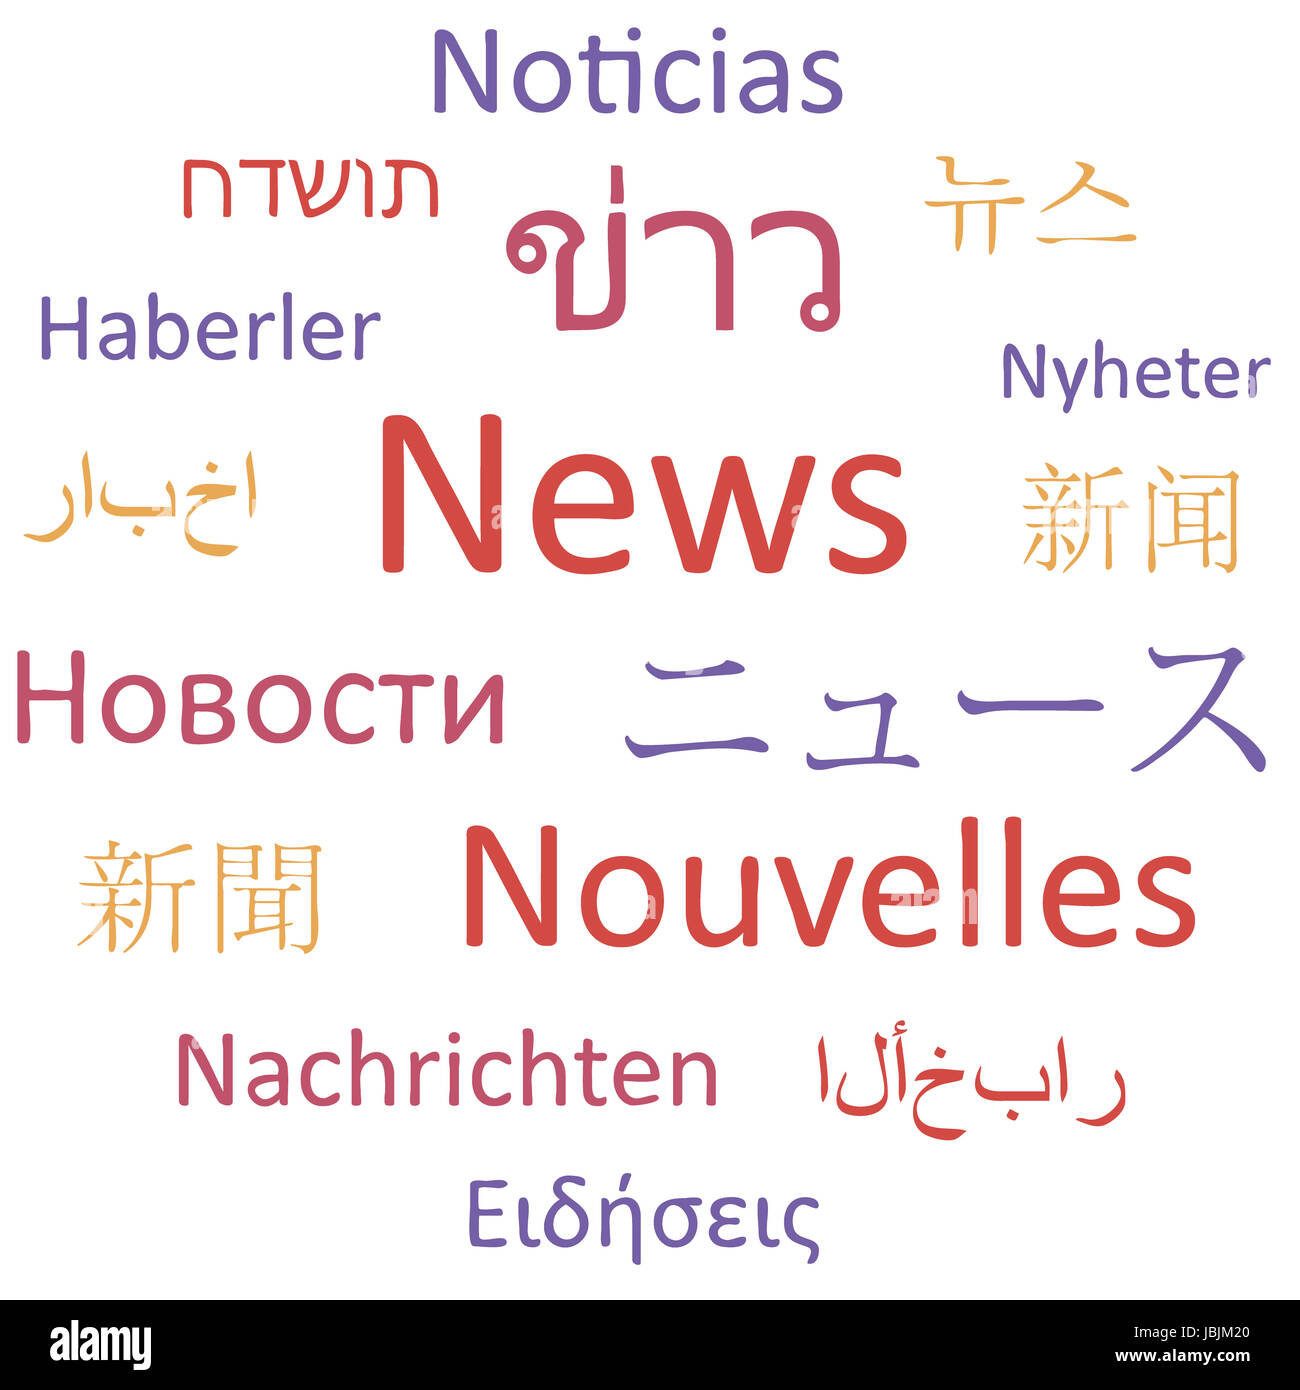 Tag cloud: 'News' in different languages. Vector illustration. - Stock Image